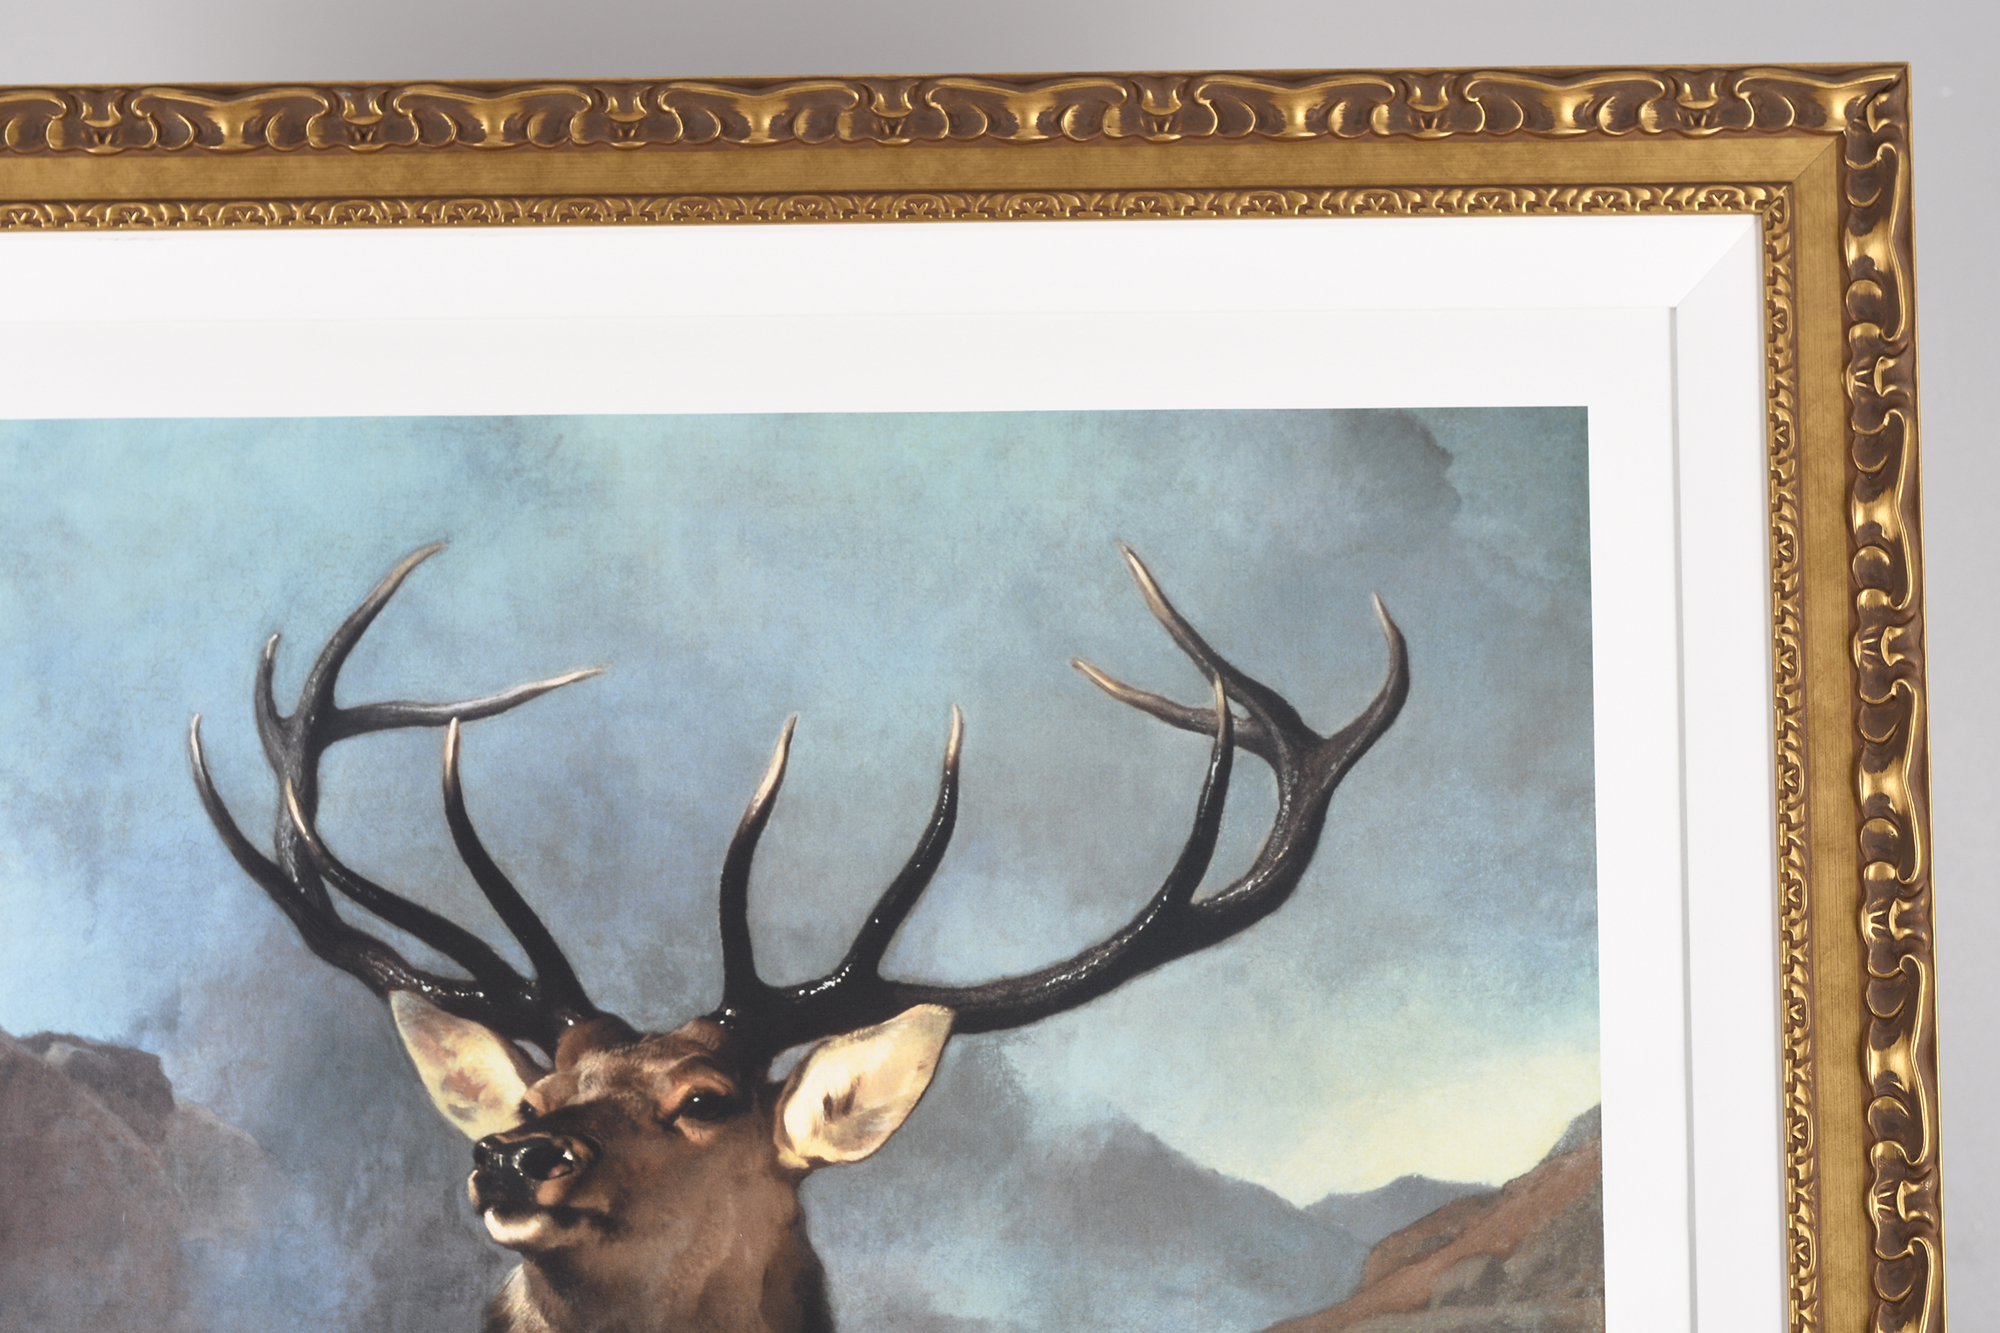 """Edwin Landseer Limited Edition """"Monarch of the Glen"""" 1 of only 85 Worldwide. - Image 3 of 9"""